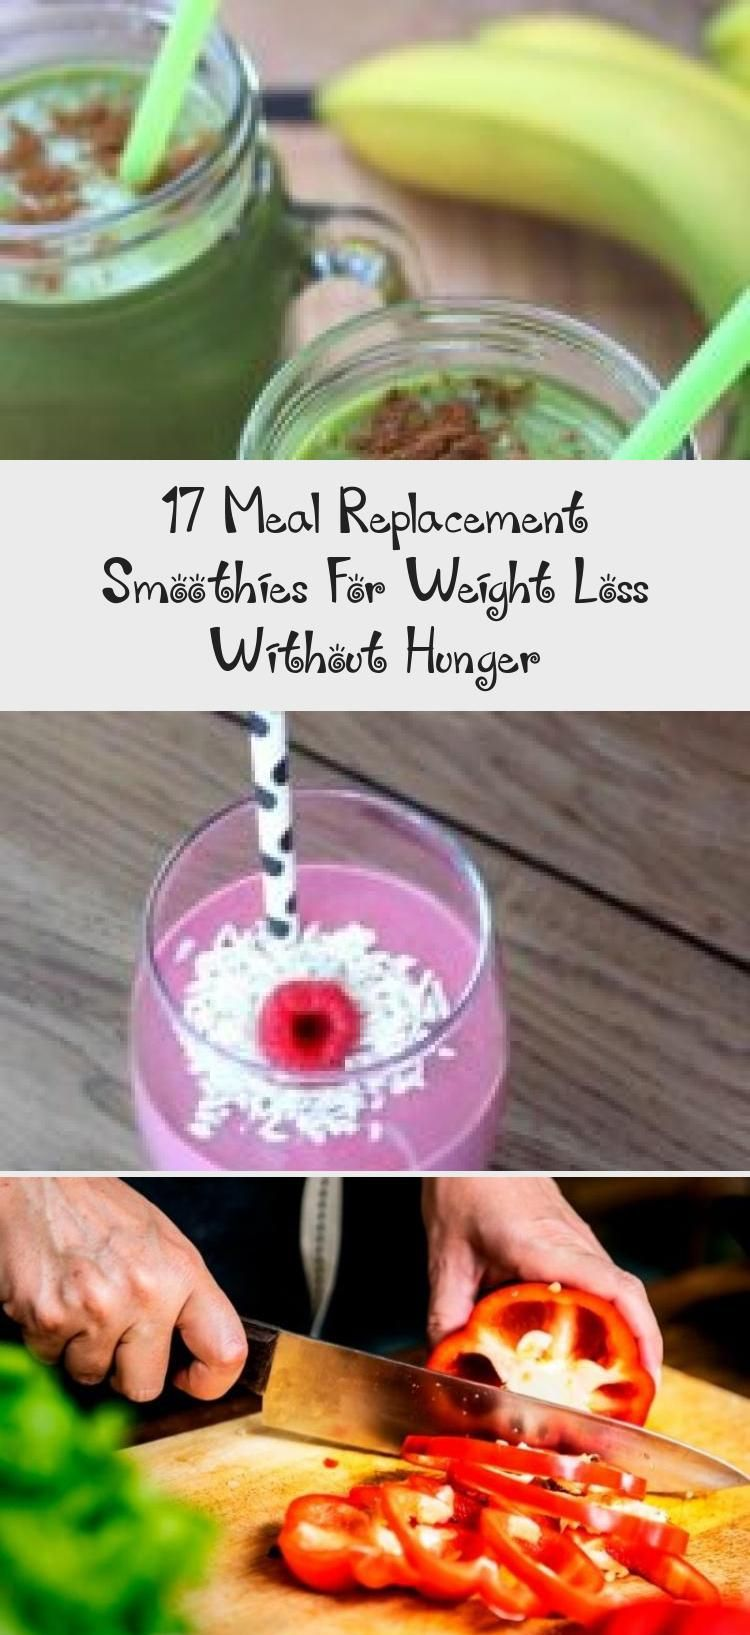 protein shake to lose weight healthy These meal replacement smoothies are all calorie counted and the ingredients are chosen for weight loss And best of all these smoothi...